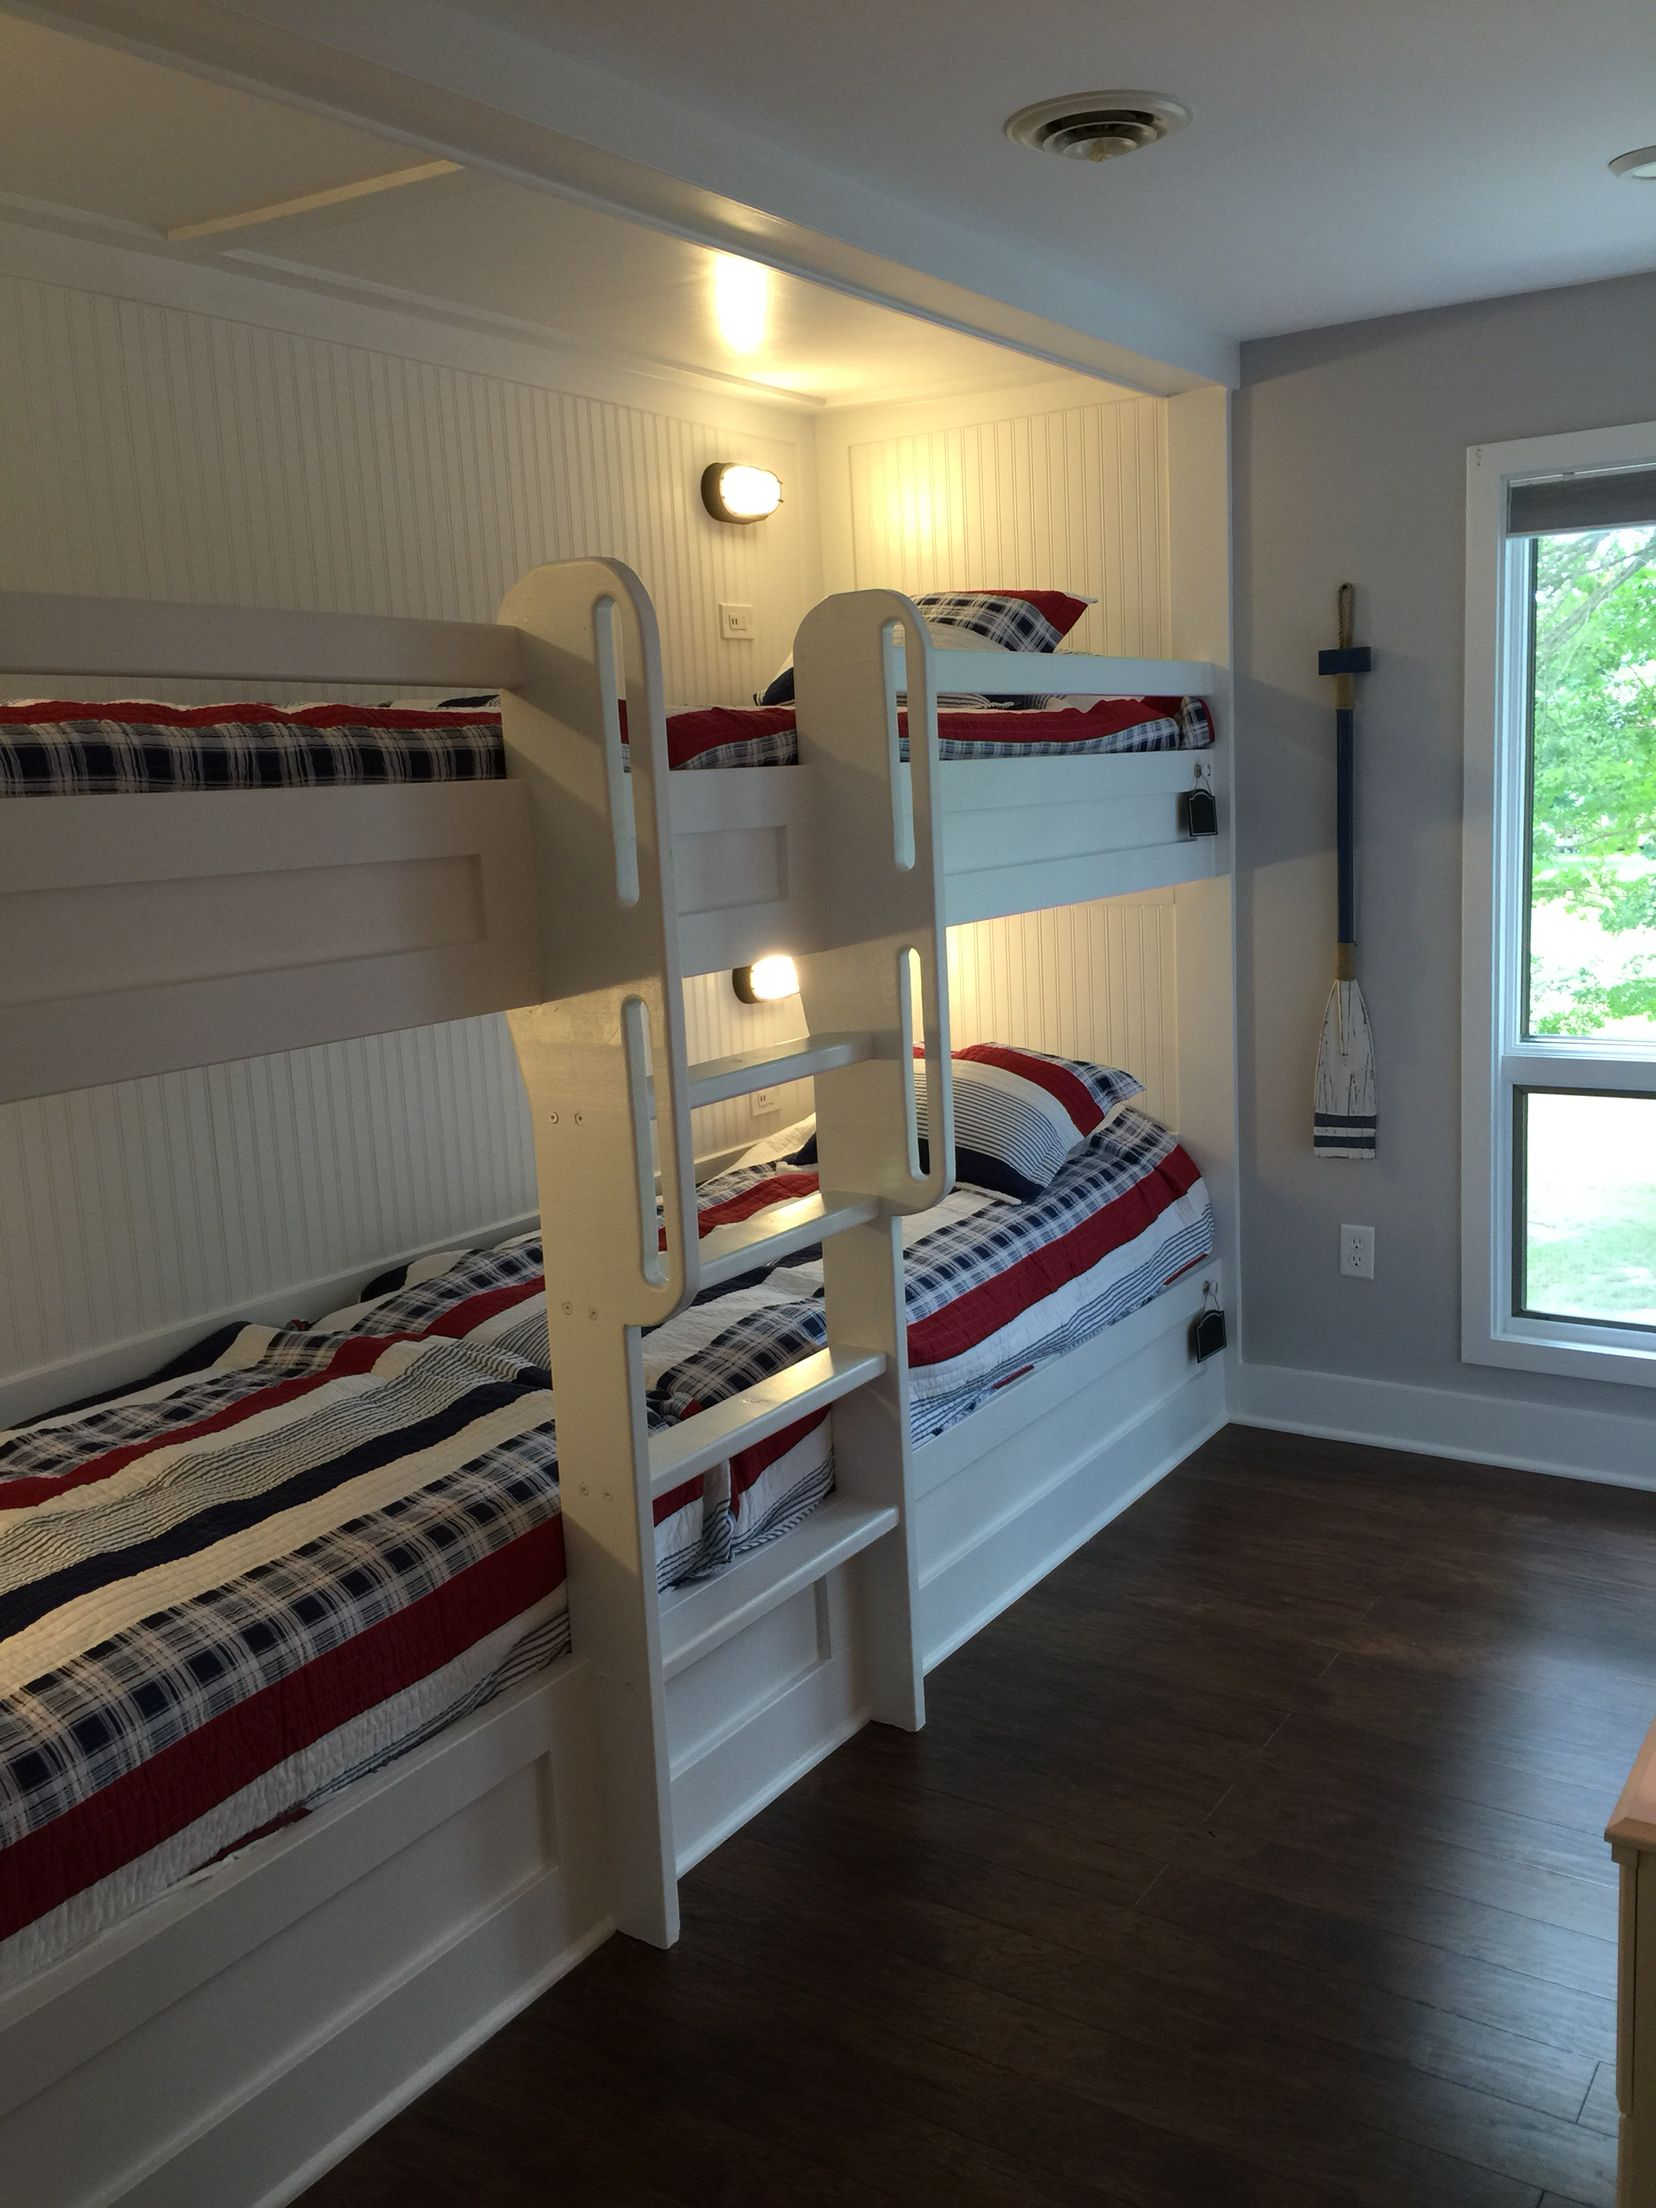 Double bunk beds with reading lights and USB charging port in each